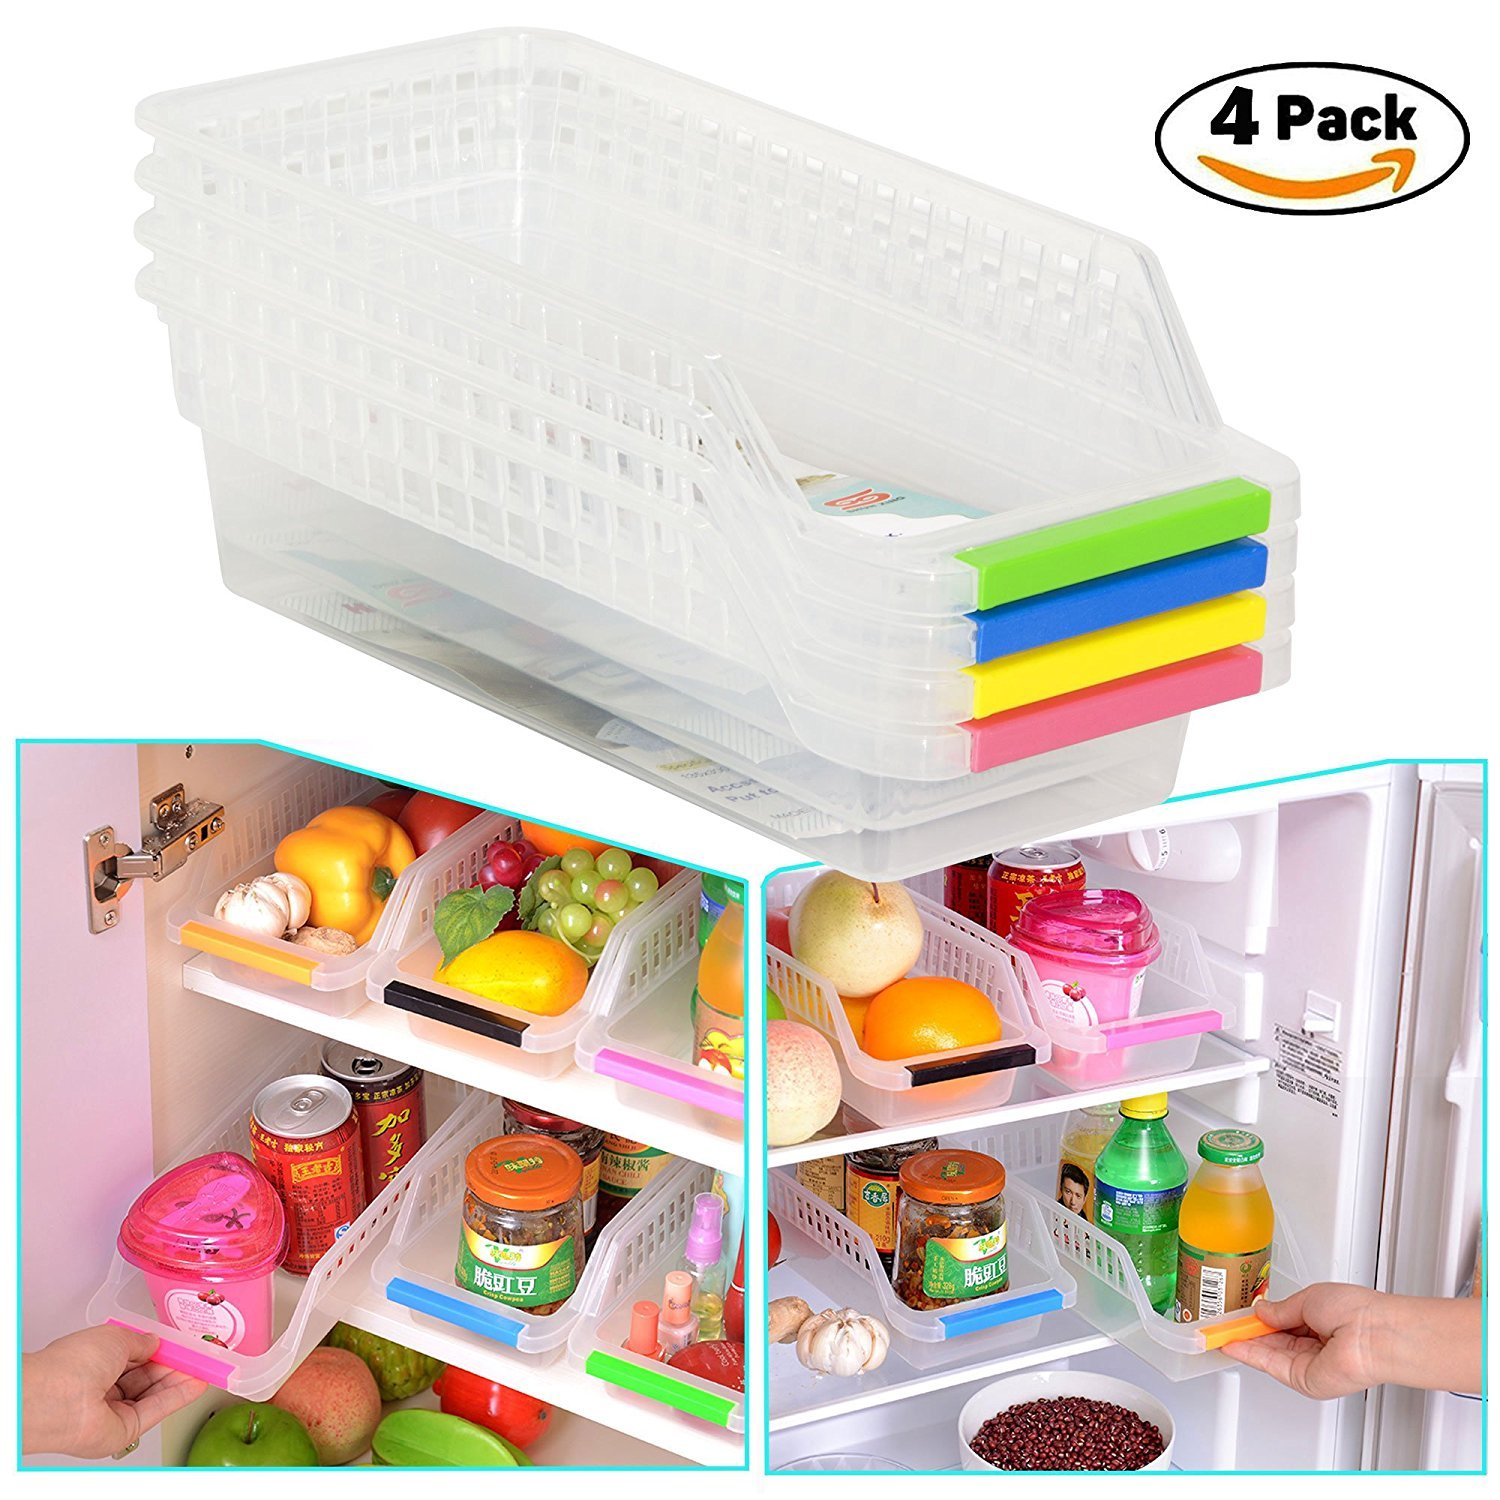 CrazySell Refrigerator Durable Storage Organizer Fruit Handled Kitchen Collecting Box Basket Rack Stand Basket Container (4Pcs) by CrazySell: Amazon.es: ...